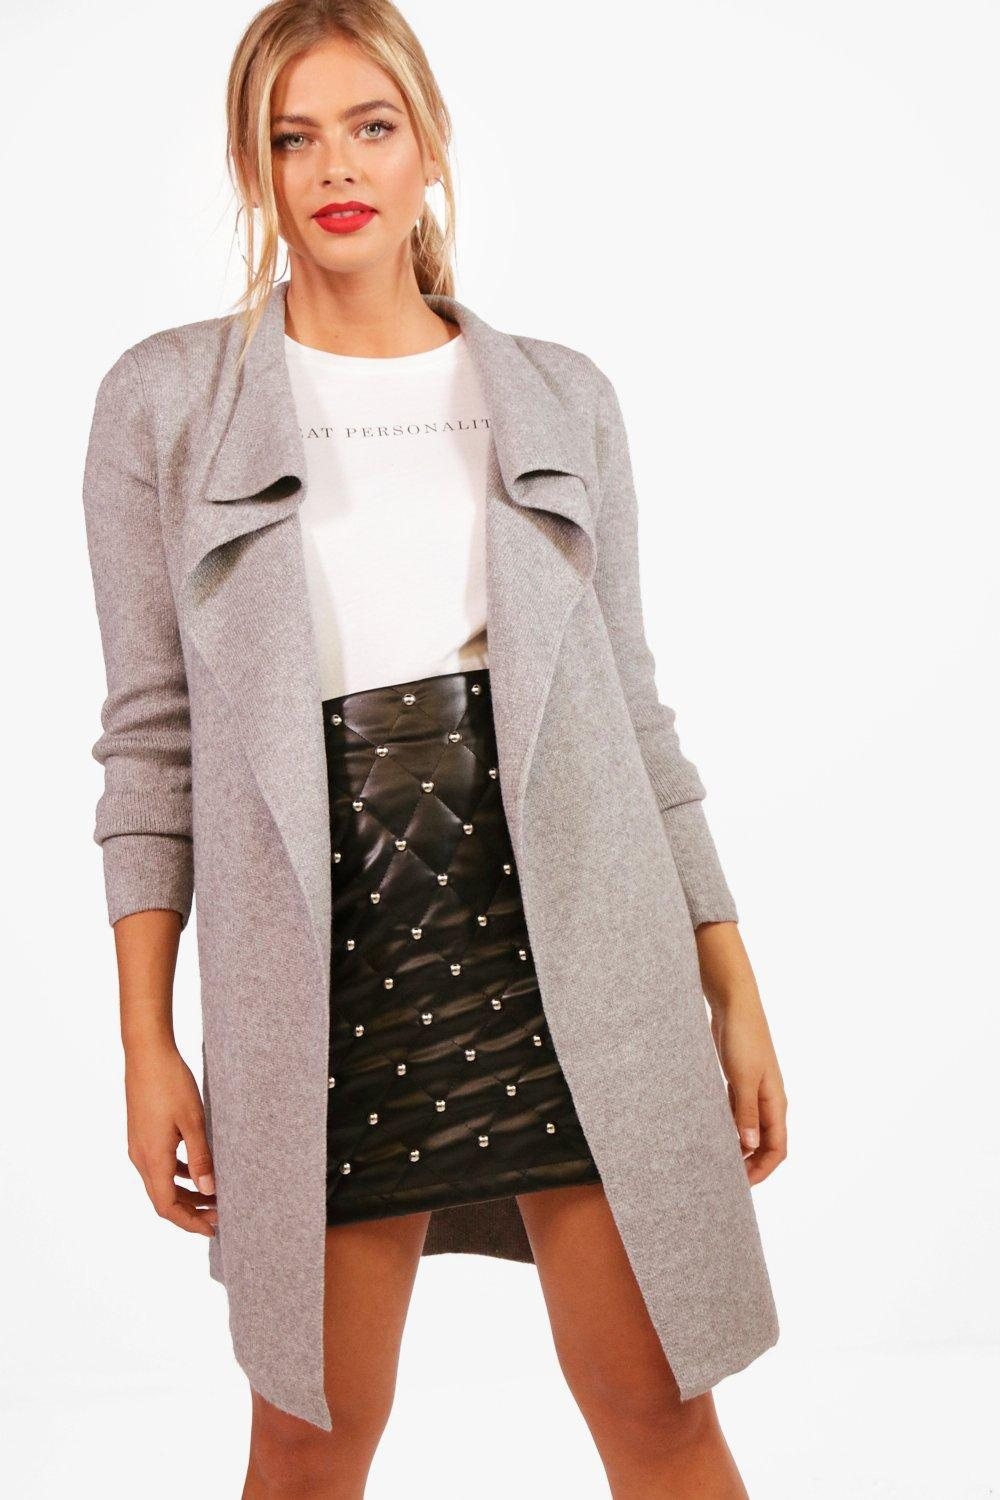 Boohoo Leah Zip Pocket Waterfall Cardigan in Gray | Lyst